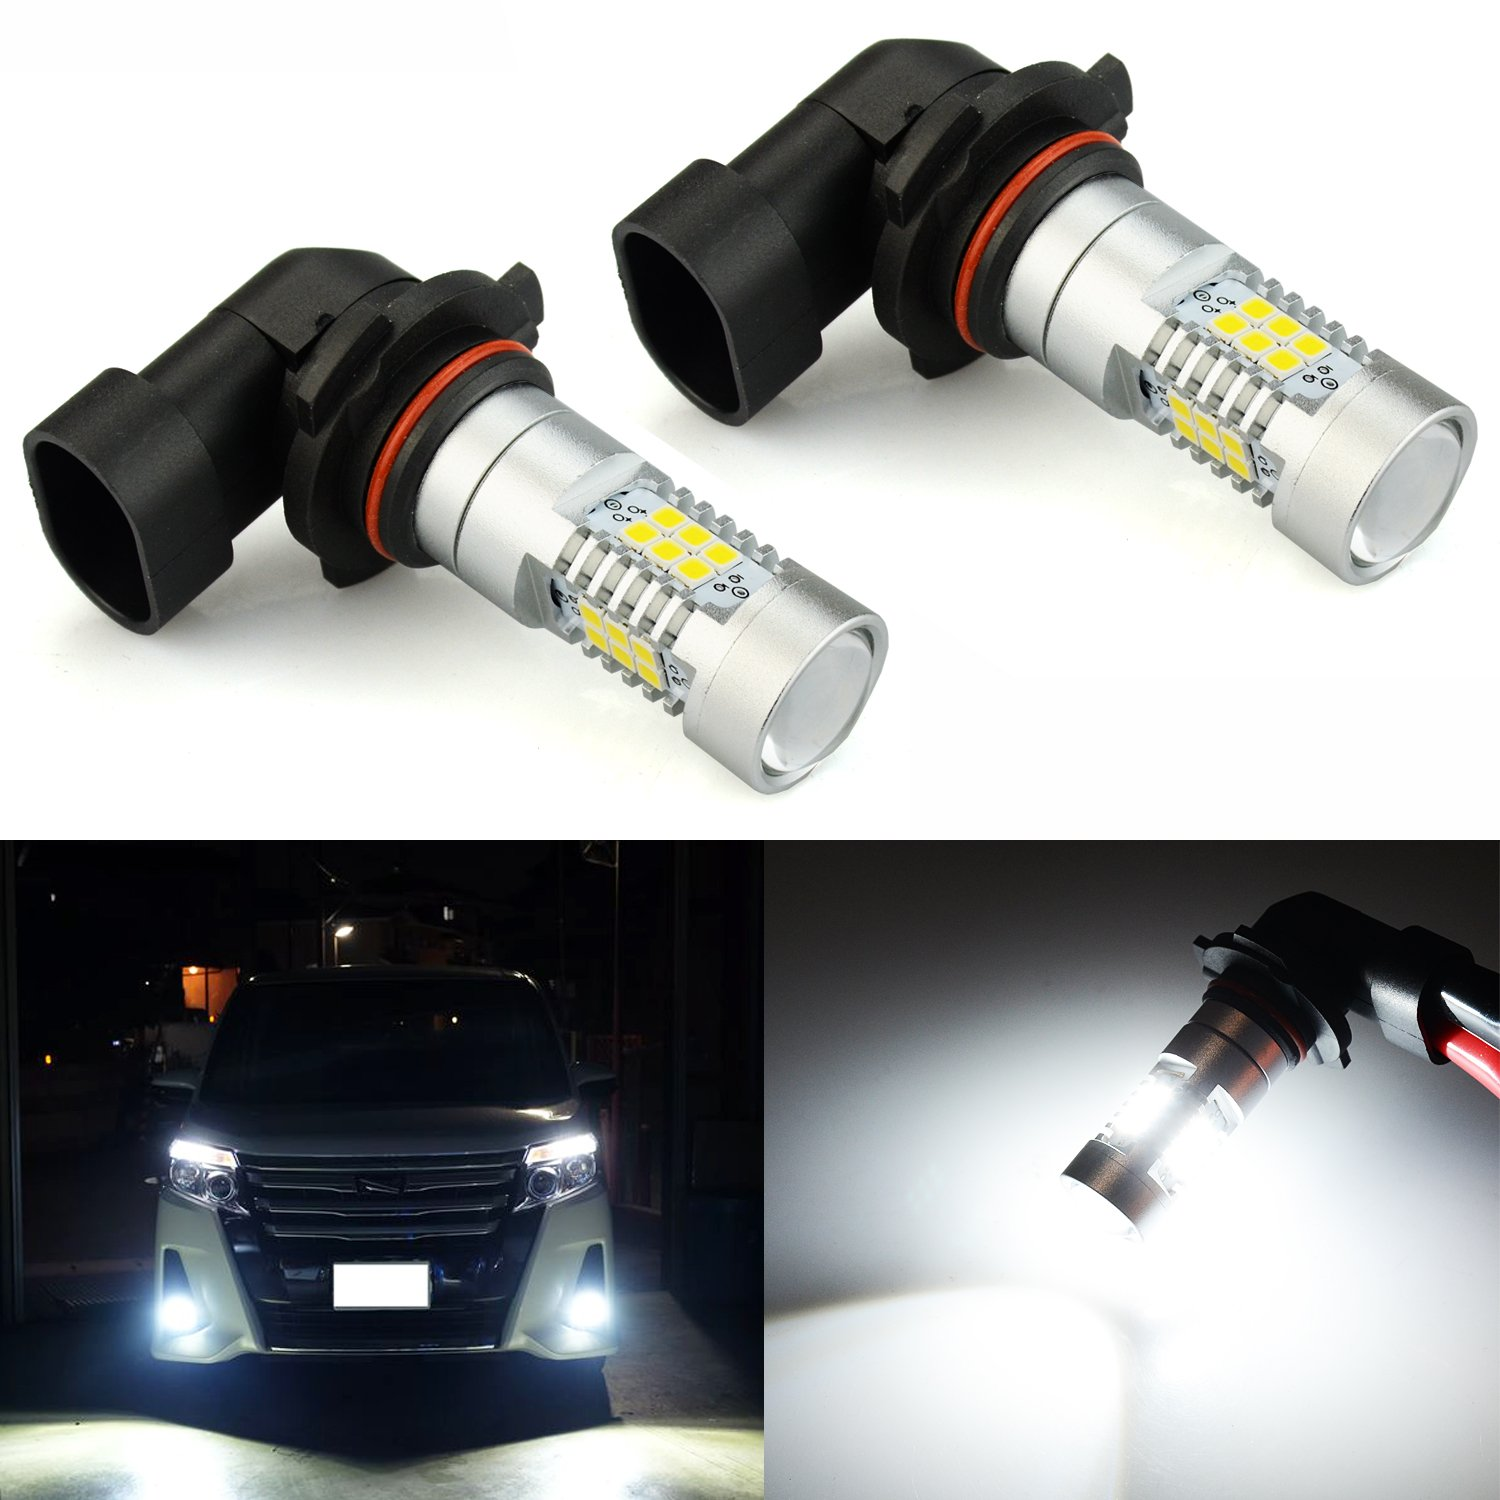 JDM ASTAR 2520 Lumens Extremely Bright PX Chips H10 9140 9145 LED Fog Light Bulbs with Projector for DRL or Fog Lights, Xenon White by JDM ASTAR